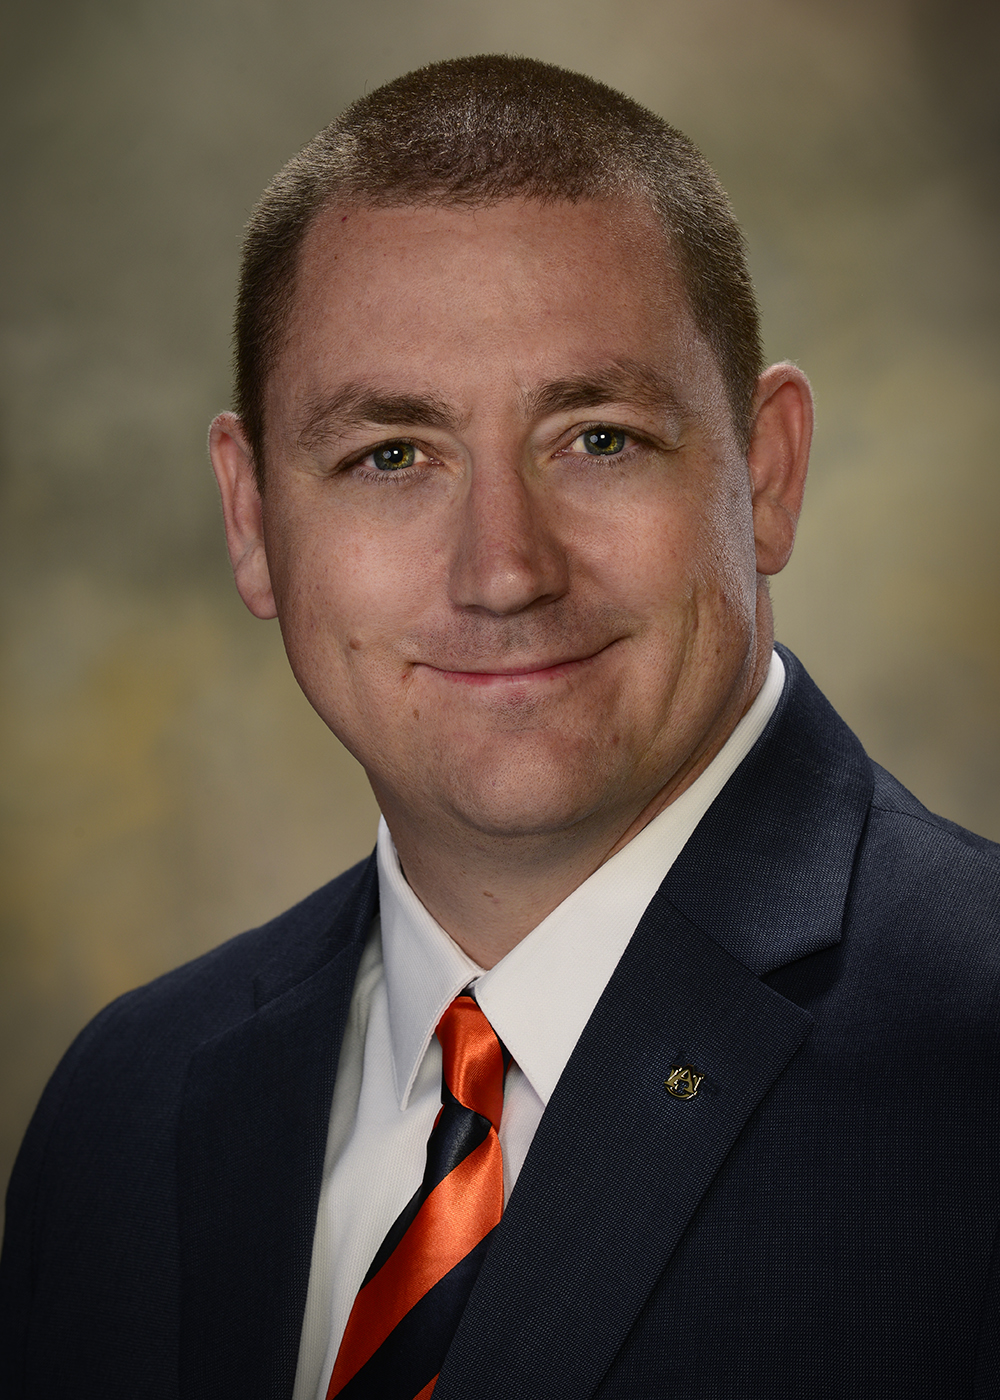 Portrait of Dr Bobby Woodard, VP for Student Affairs at Auburn University